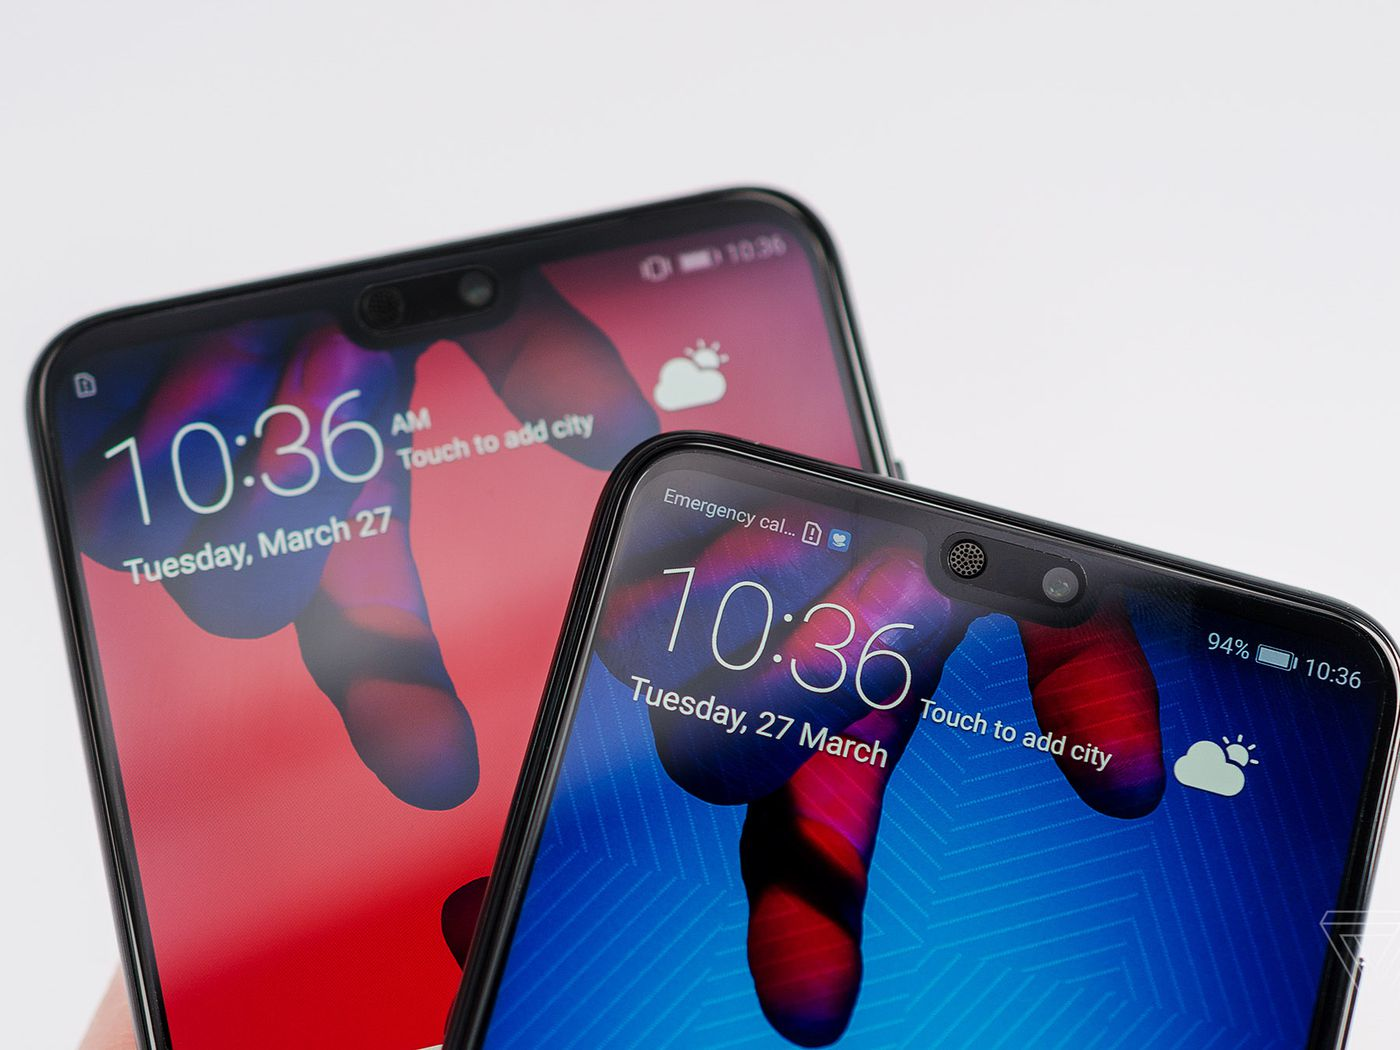 Huawei will let all phone users access 'performance mode